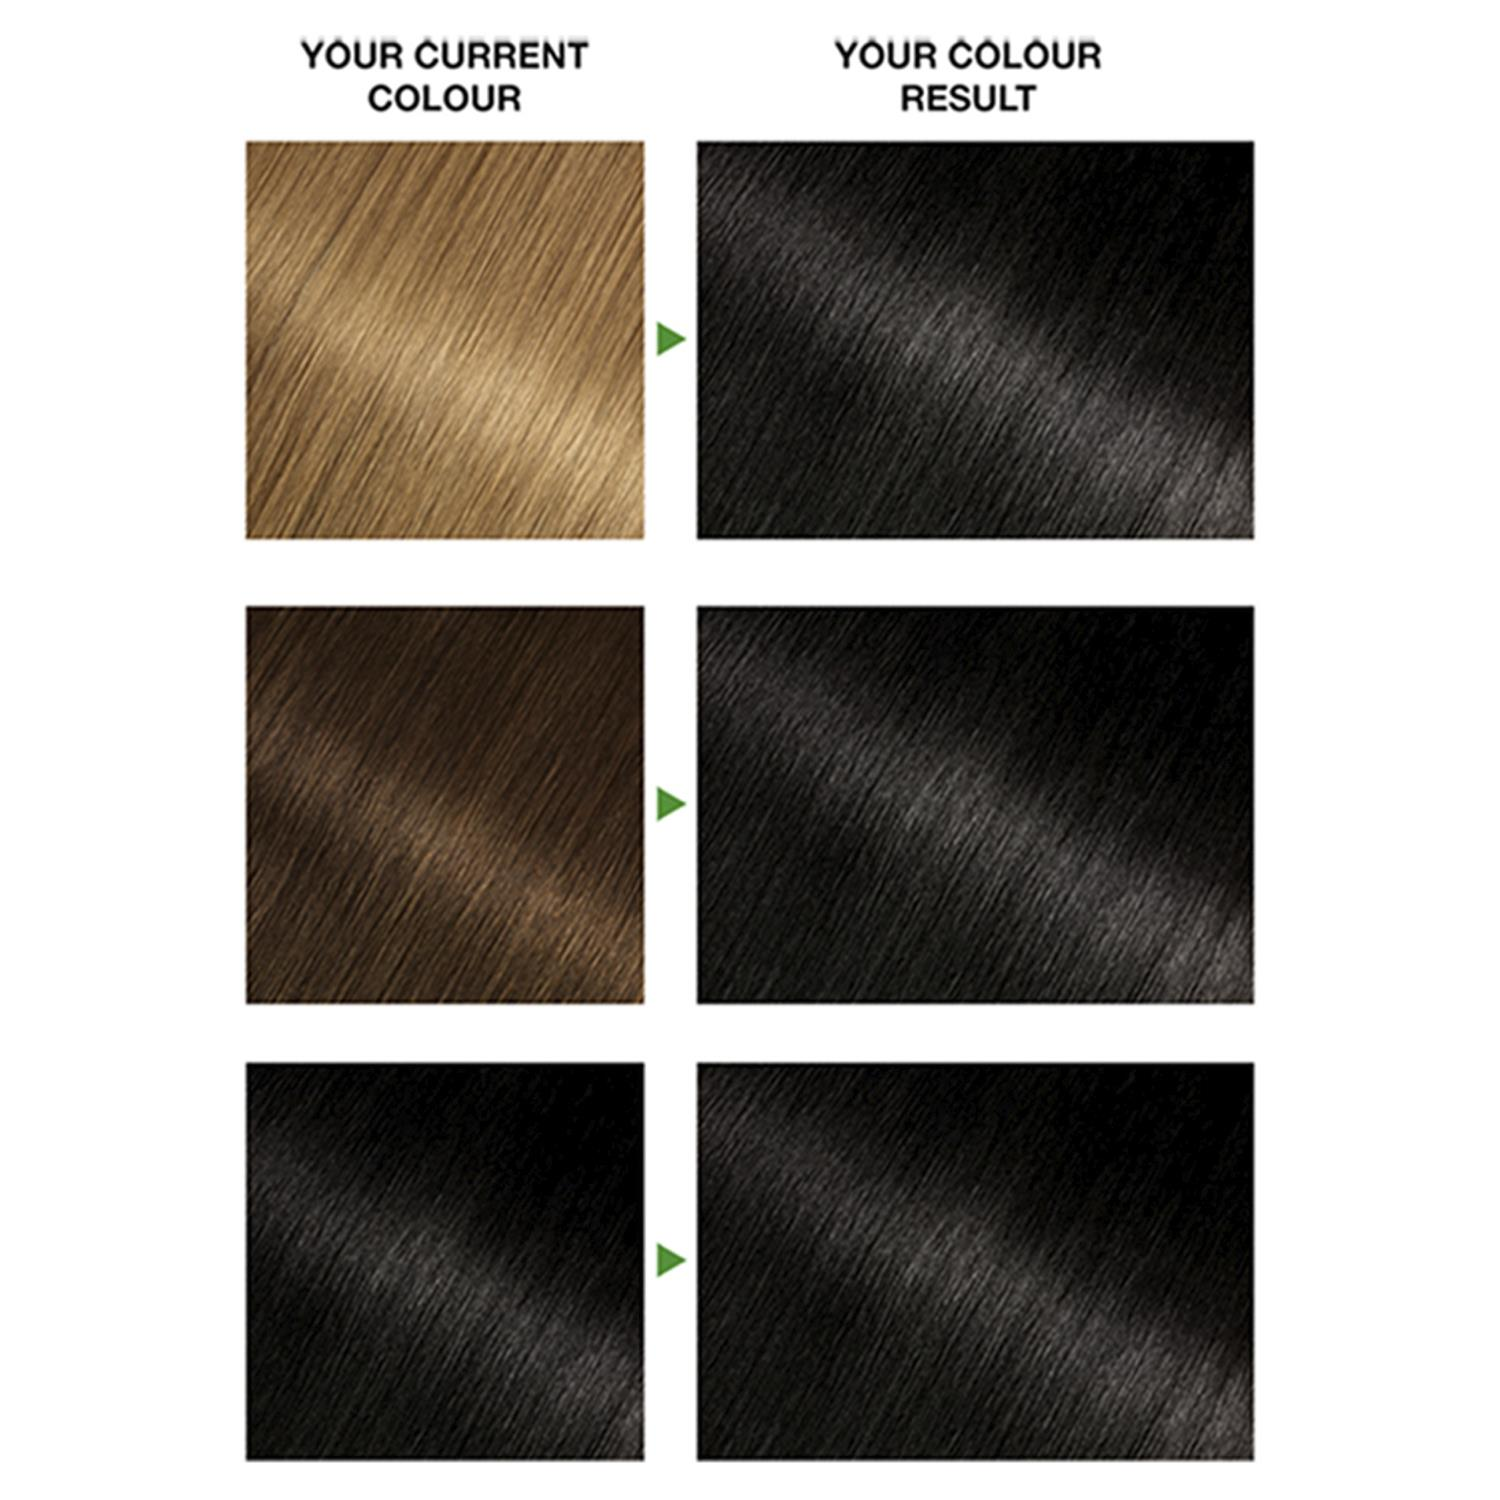 thumbnail 19 - 3 Pack Garnier Nutrisse Permanent Hair Dye With Different Shades